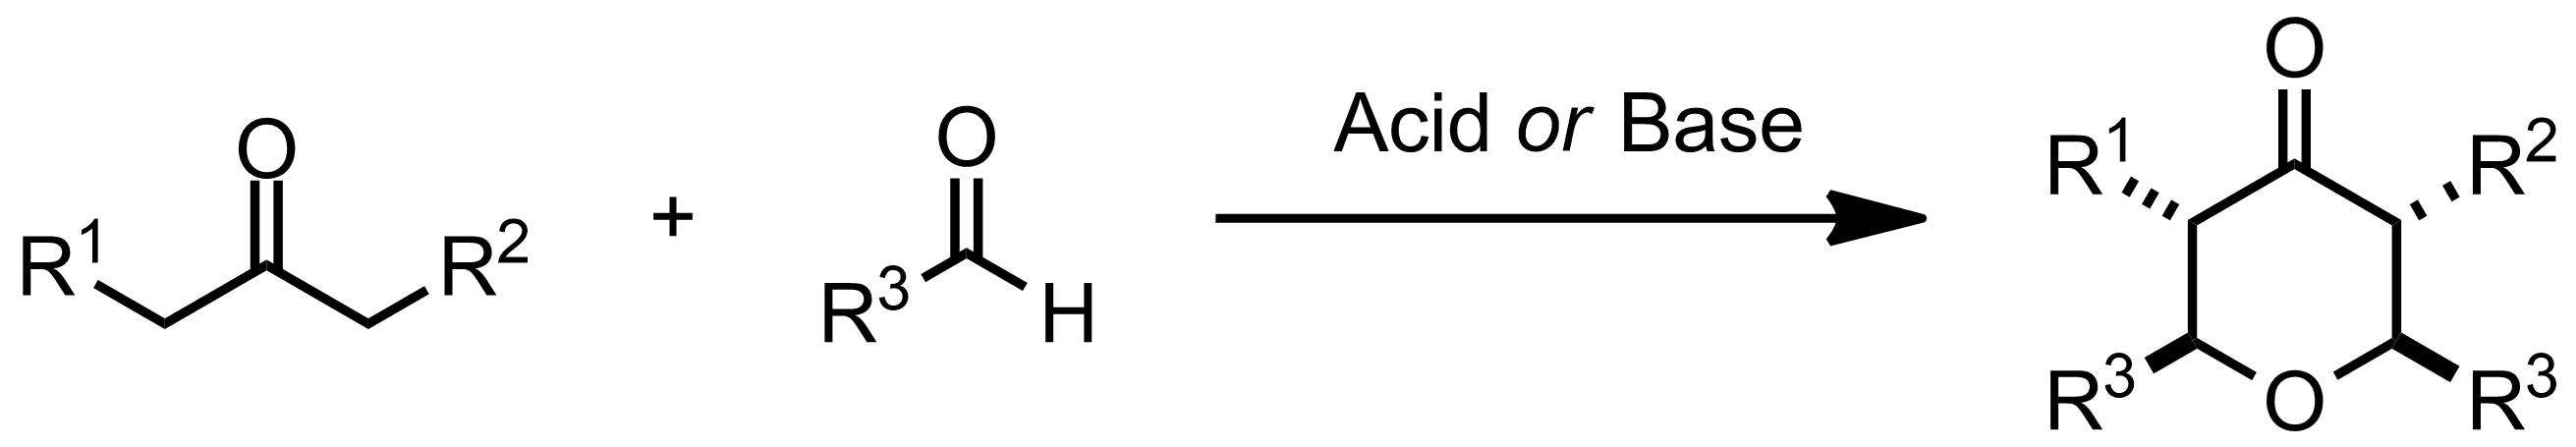 Schematic representation of the Maitland-Japp Reaction.